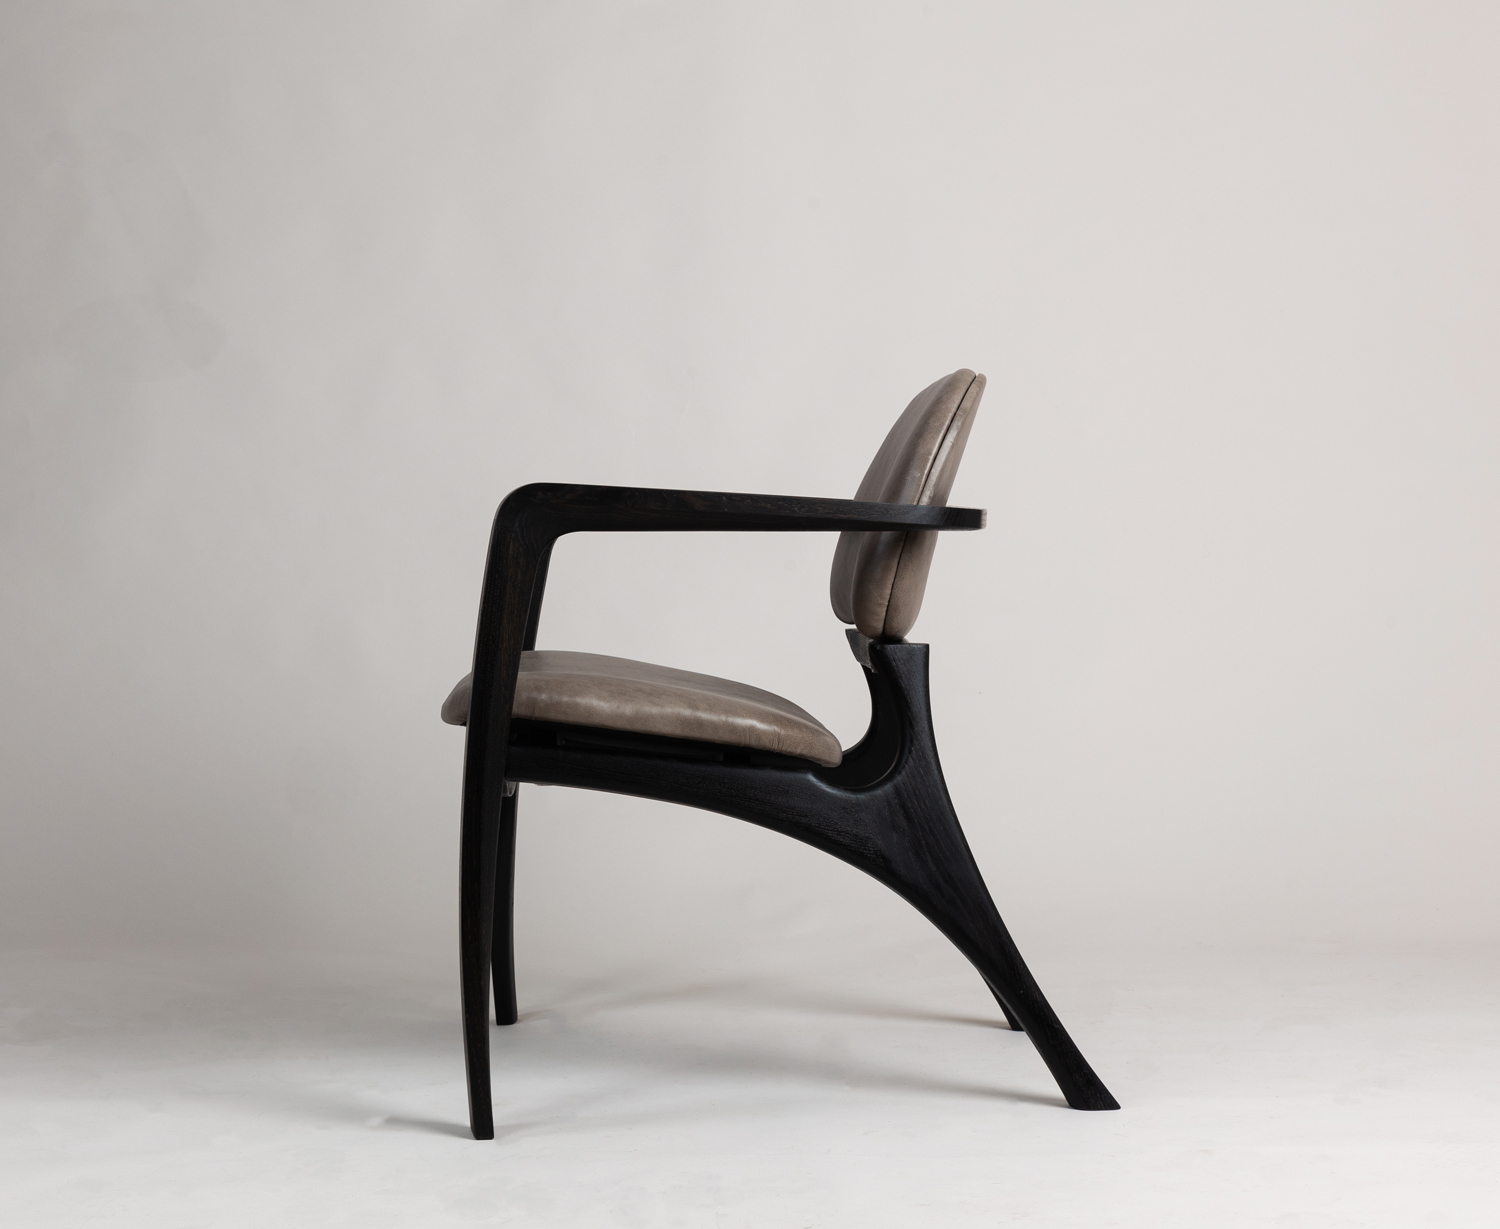 Amplex chair in ebonised Oak accented with grey leather seat and back rest